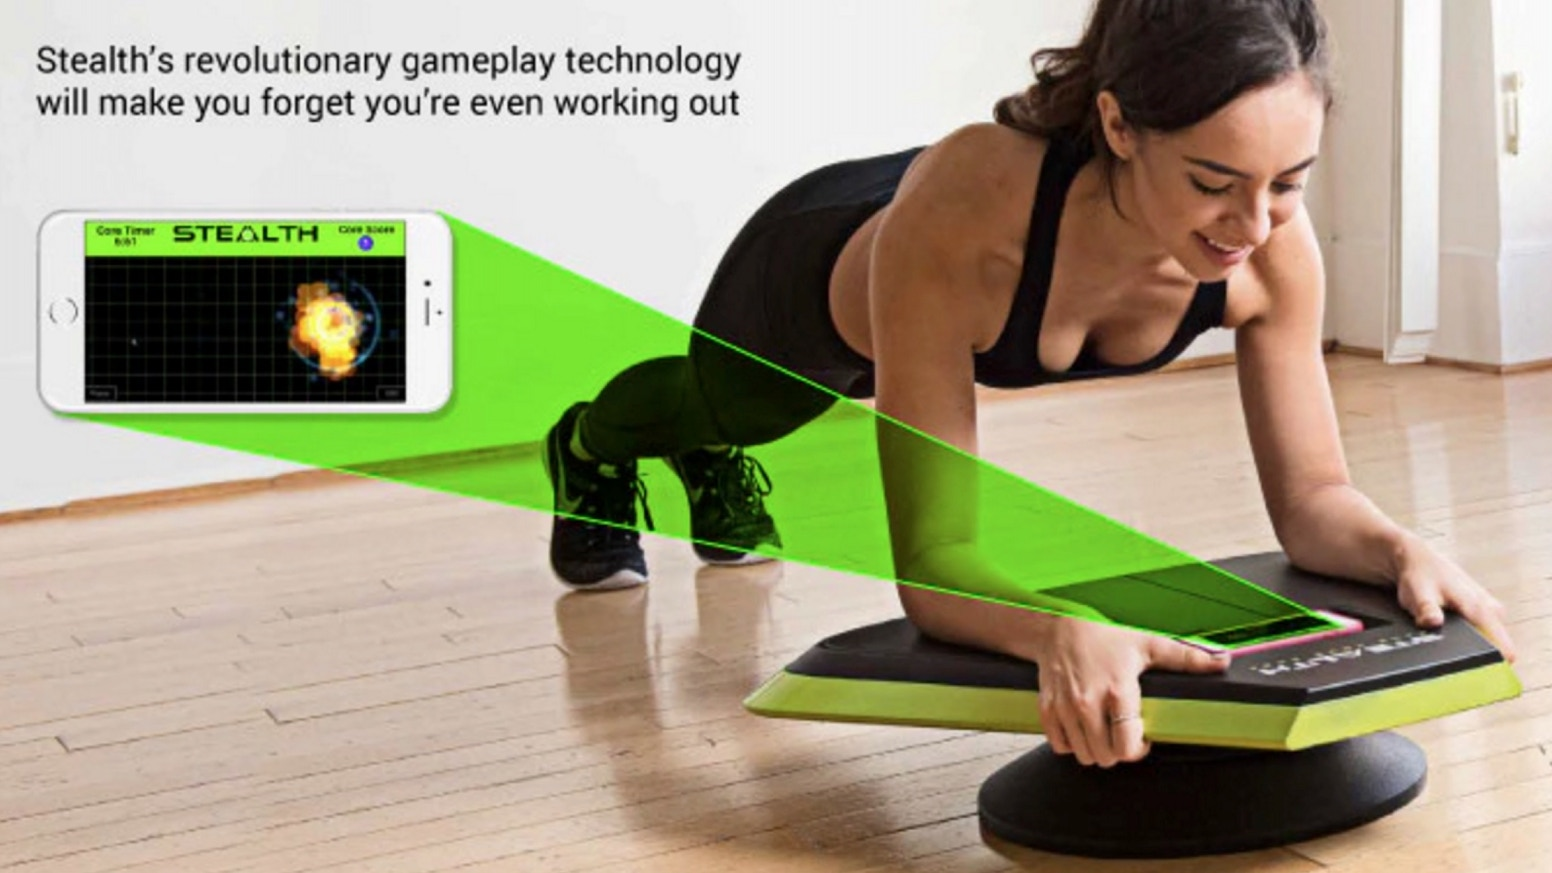 Stealth Turns Your Body Into A Joystick Letting You Control Fun Mobile Games With Core Training